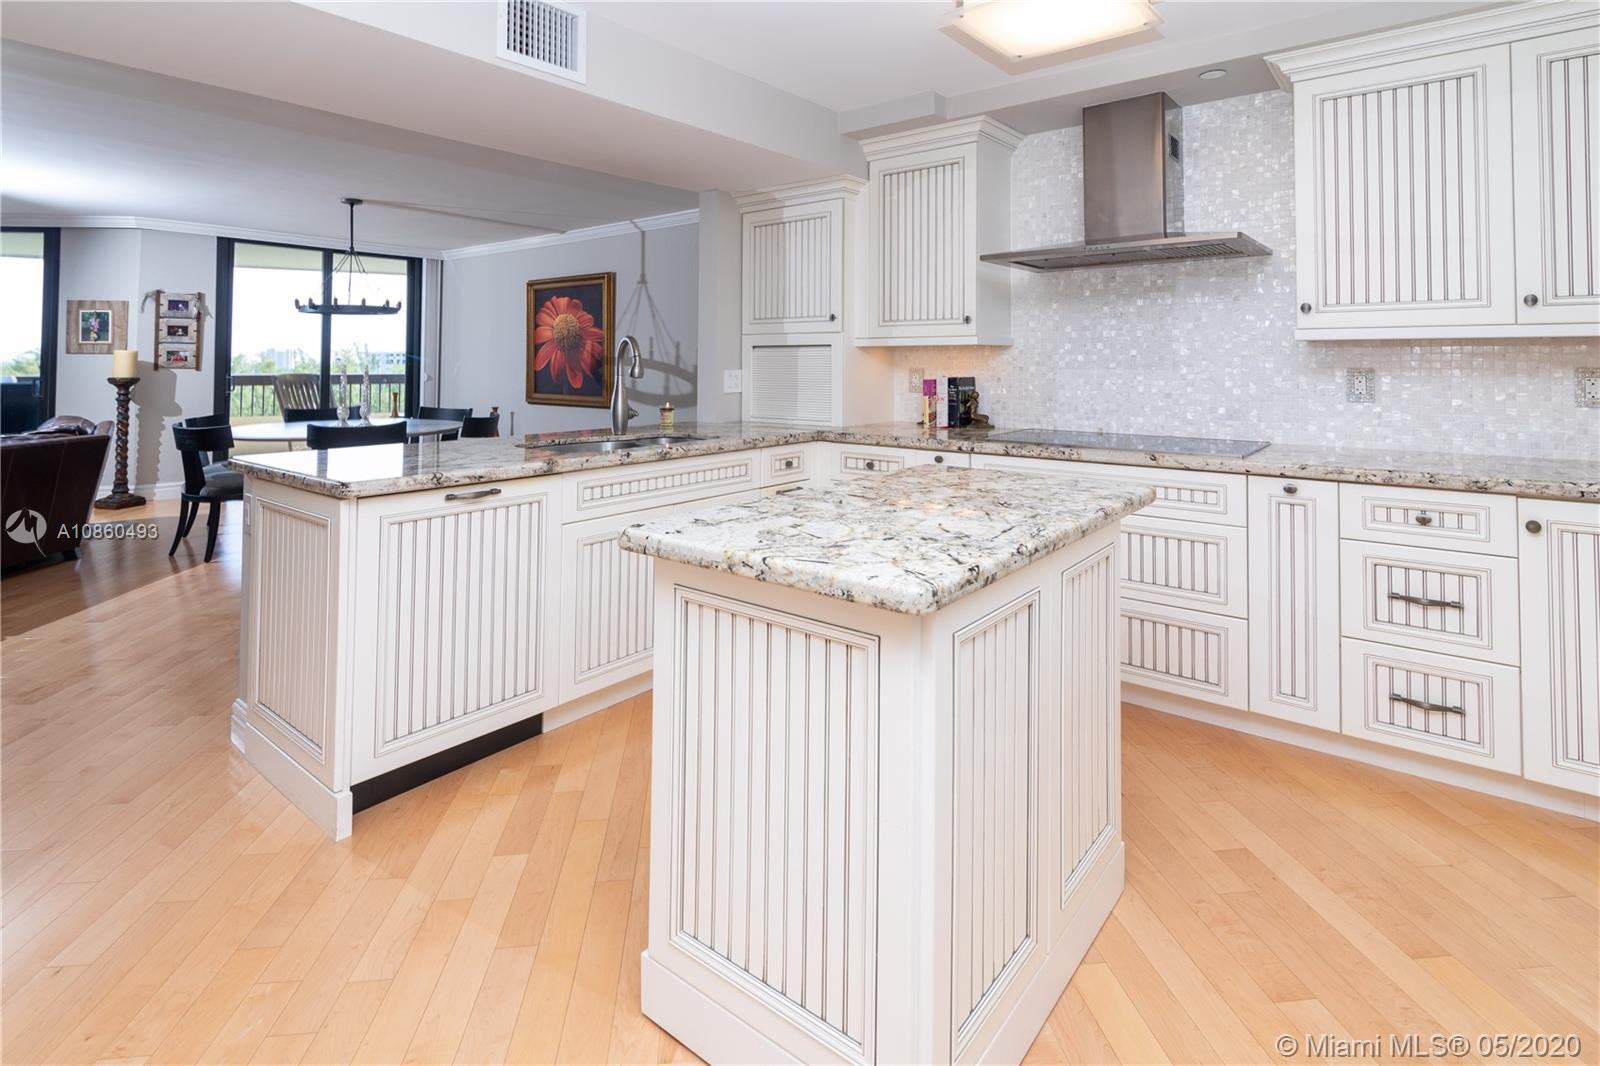 PENTHOUSE! OCEAN AND INTRACOASTAL VIEWS! THIS UNIT IS OVER APPROX 1725 SQF AND THE LARGEST MODEL WITH A 30 FT BALCONY. COMPLETELY RENOVATED WITH SPLIT FLOOR PLAN, IMPACT WINDOWS, AND VIEWS FROM EVERY ROOM! TOP QUALITY FLOORS THOUGH OUT! A/C AND WATER HEATER 2019. FEW HAVE LARGE AND ELEGANT EAT-IN OPEN KITCHEN LIKE THIS - CHEFS THIS IS FOR YOU. THE LIVING & DINING AREAS ALLOW FOR MAXIMUM LIGHT. MASTER BEDROOM HAS FURNISHED WALK IN CLOSET WITH BUILT-INS THAT COMPLIMENT A TASTEFULLY RENOVATED LARGE EN-SUITE BATHROOM. THE SECOND BEDROOM FEELS LIKE ANOTHER MASTER BEDROOM WITH A SPACIOUS BATHROOM. LAUNDRY IN UNIT. AMENITIES: PARTY ROOM, GYM, BILLIARDS, 24 HR SECURITY AND COVERED PARKING. BUILDING HAS BEEN RECENTLY RENOVATED AND KNOWN FOR ITS HIGH-END STYLE. YOU ARE MINUTES TO THE BEACH!